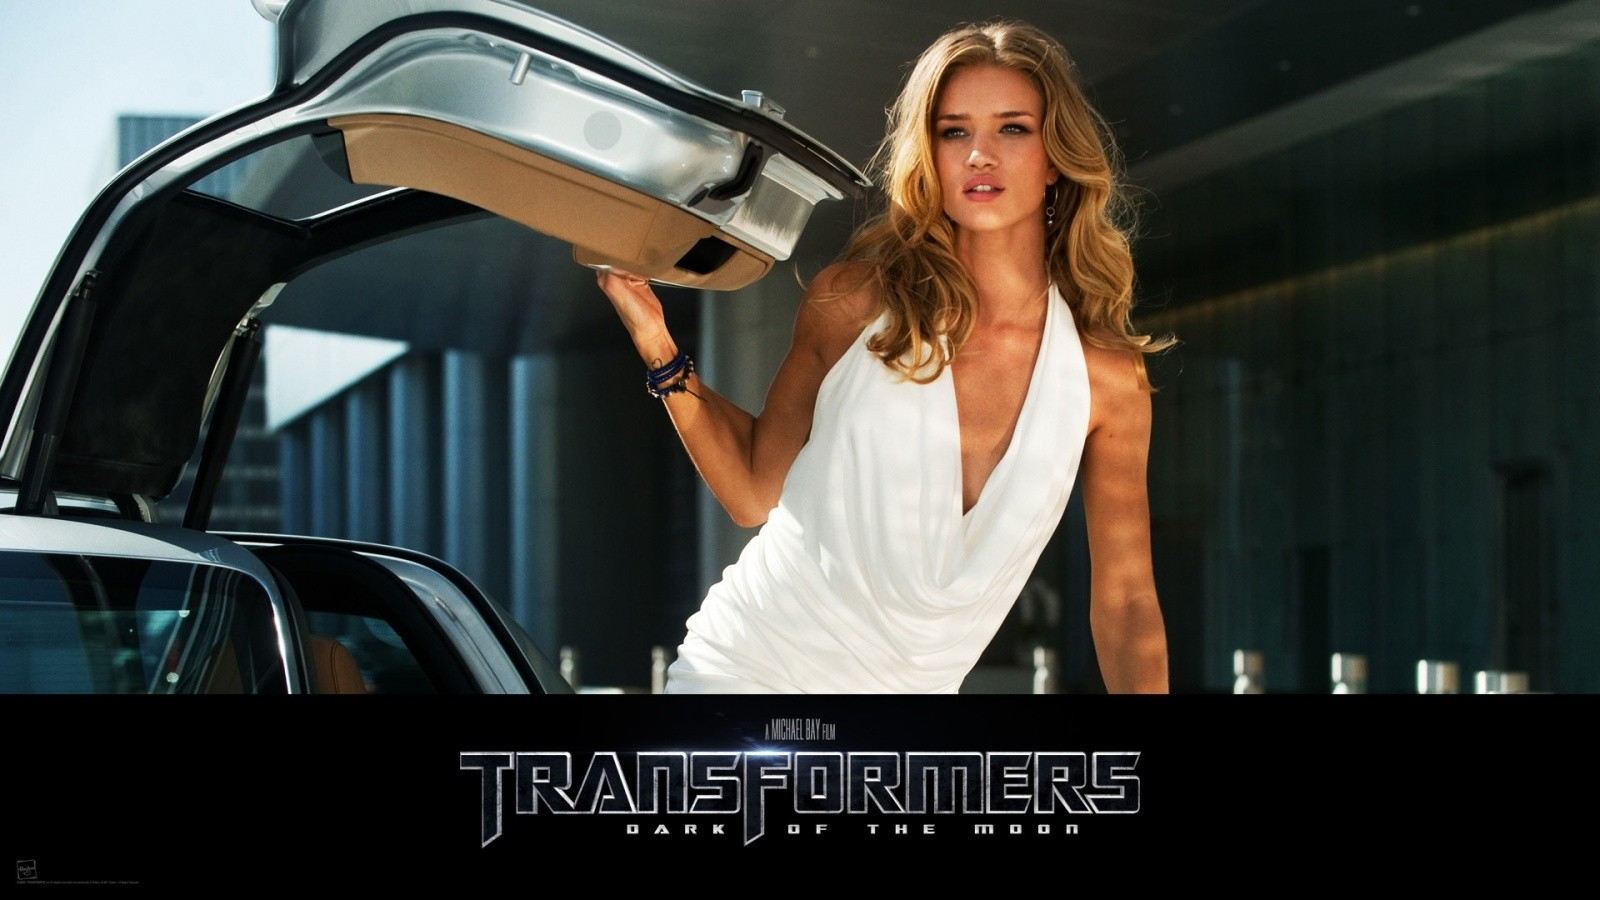 rosie_huntington_transformers-wallpaper-1600x900.jpg